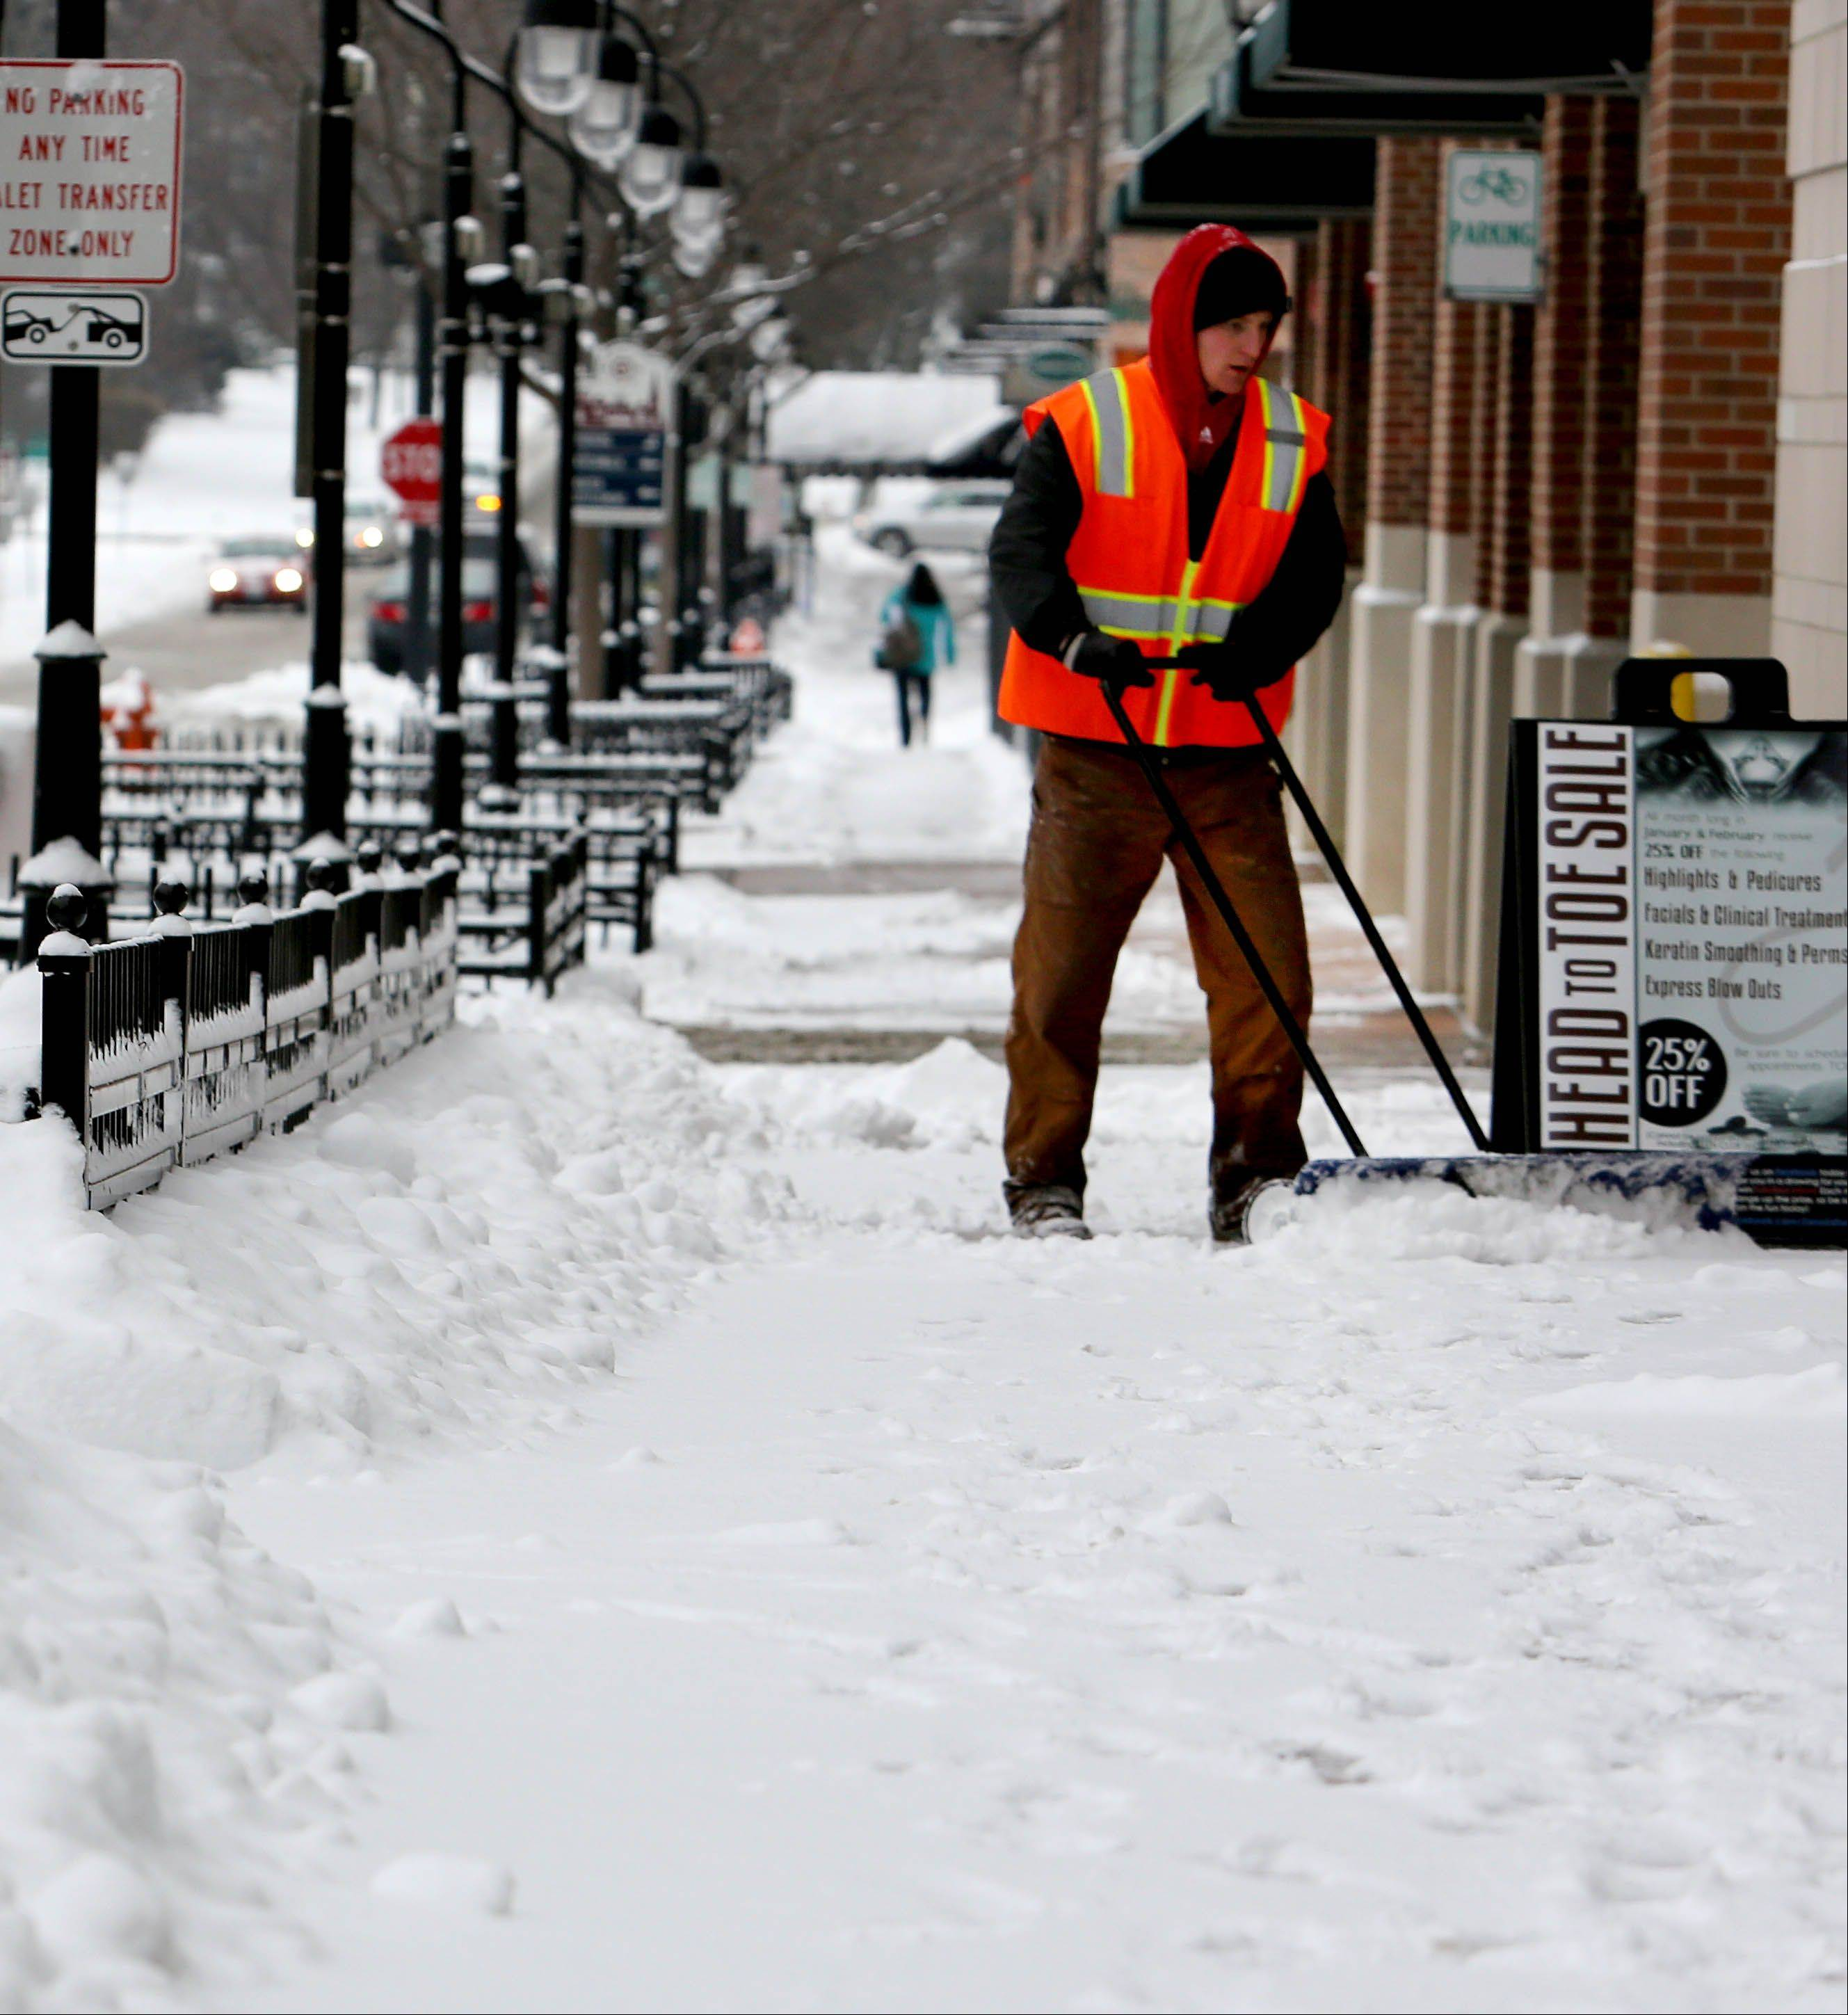 Tim Beckteo works to clear the sidewalks Friday in downtown Naperville after an overnight snow.